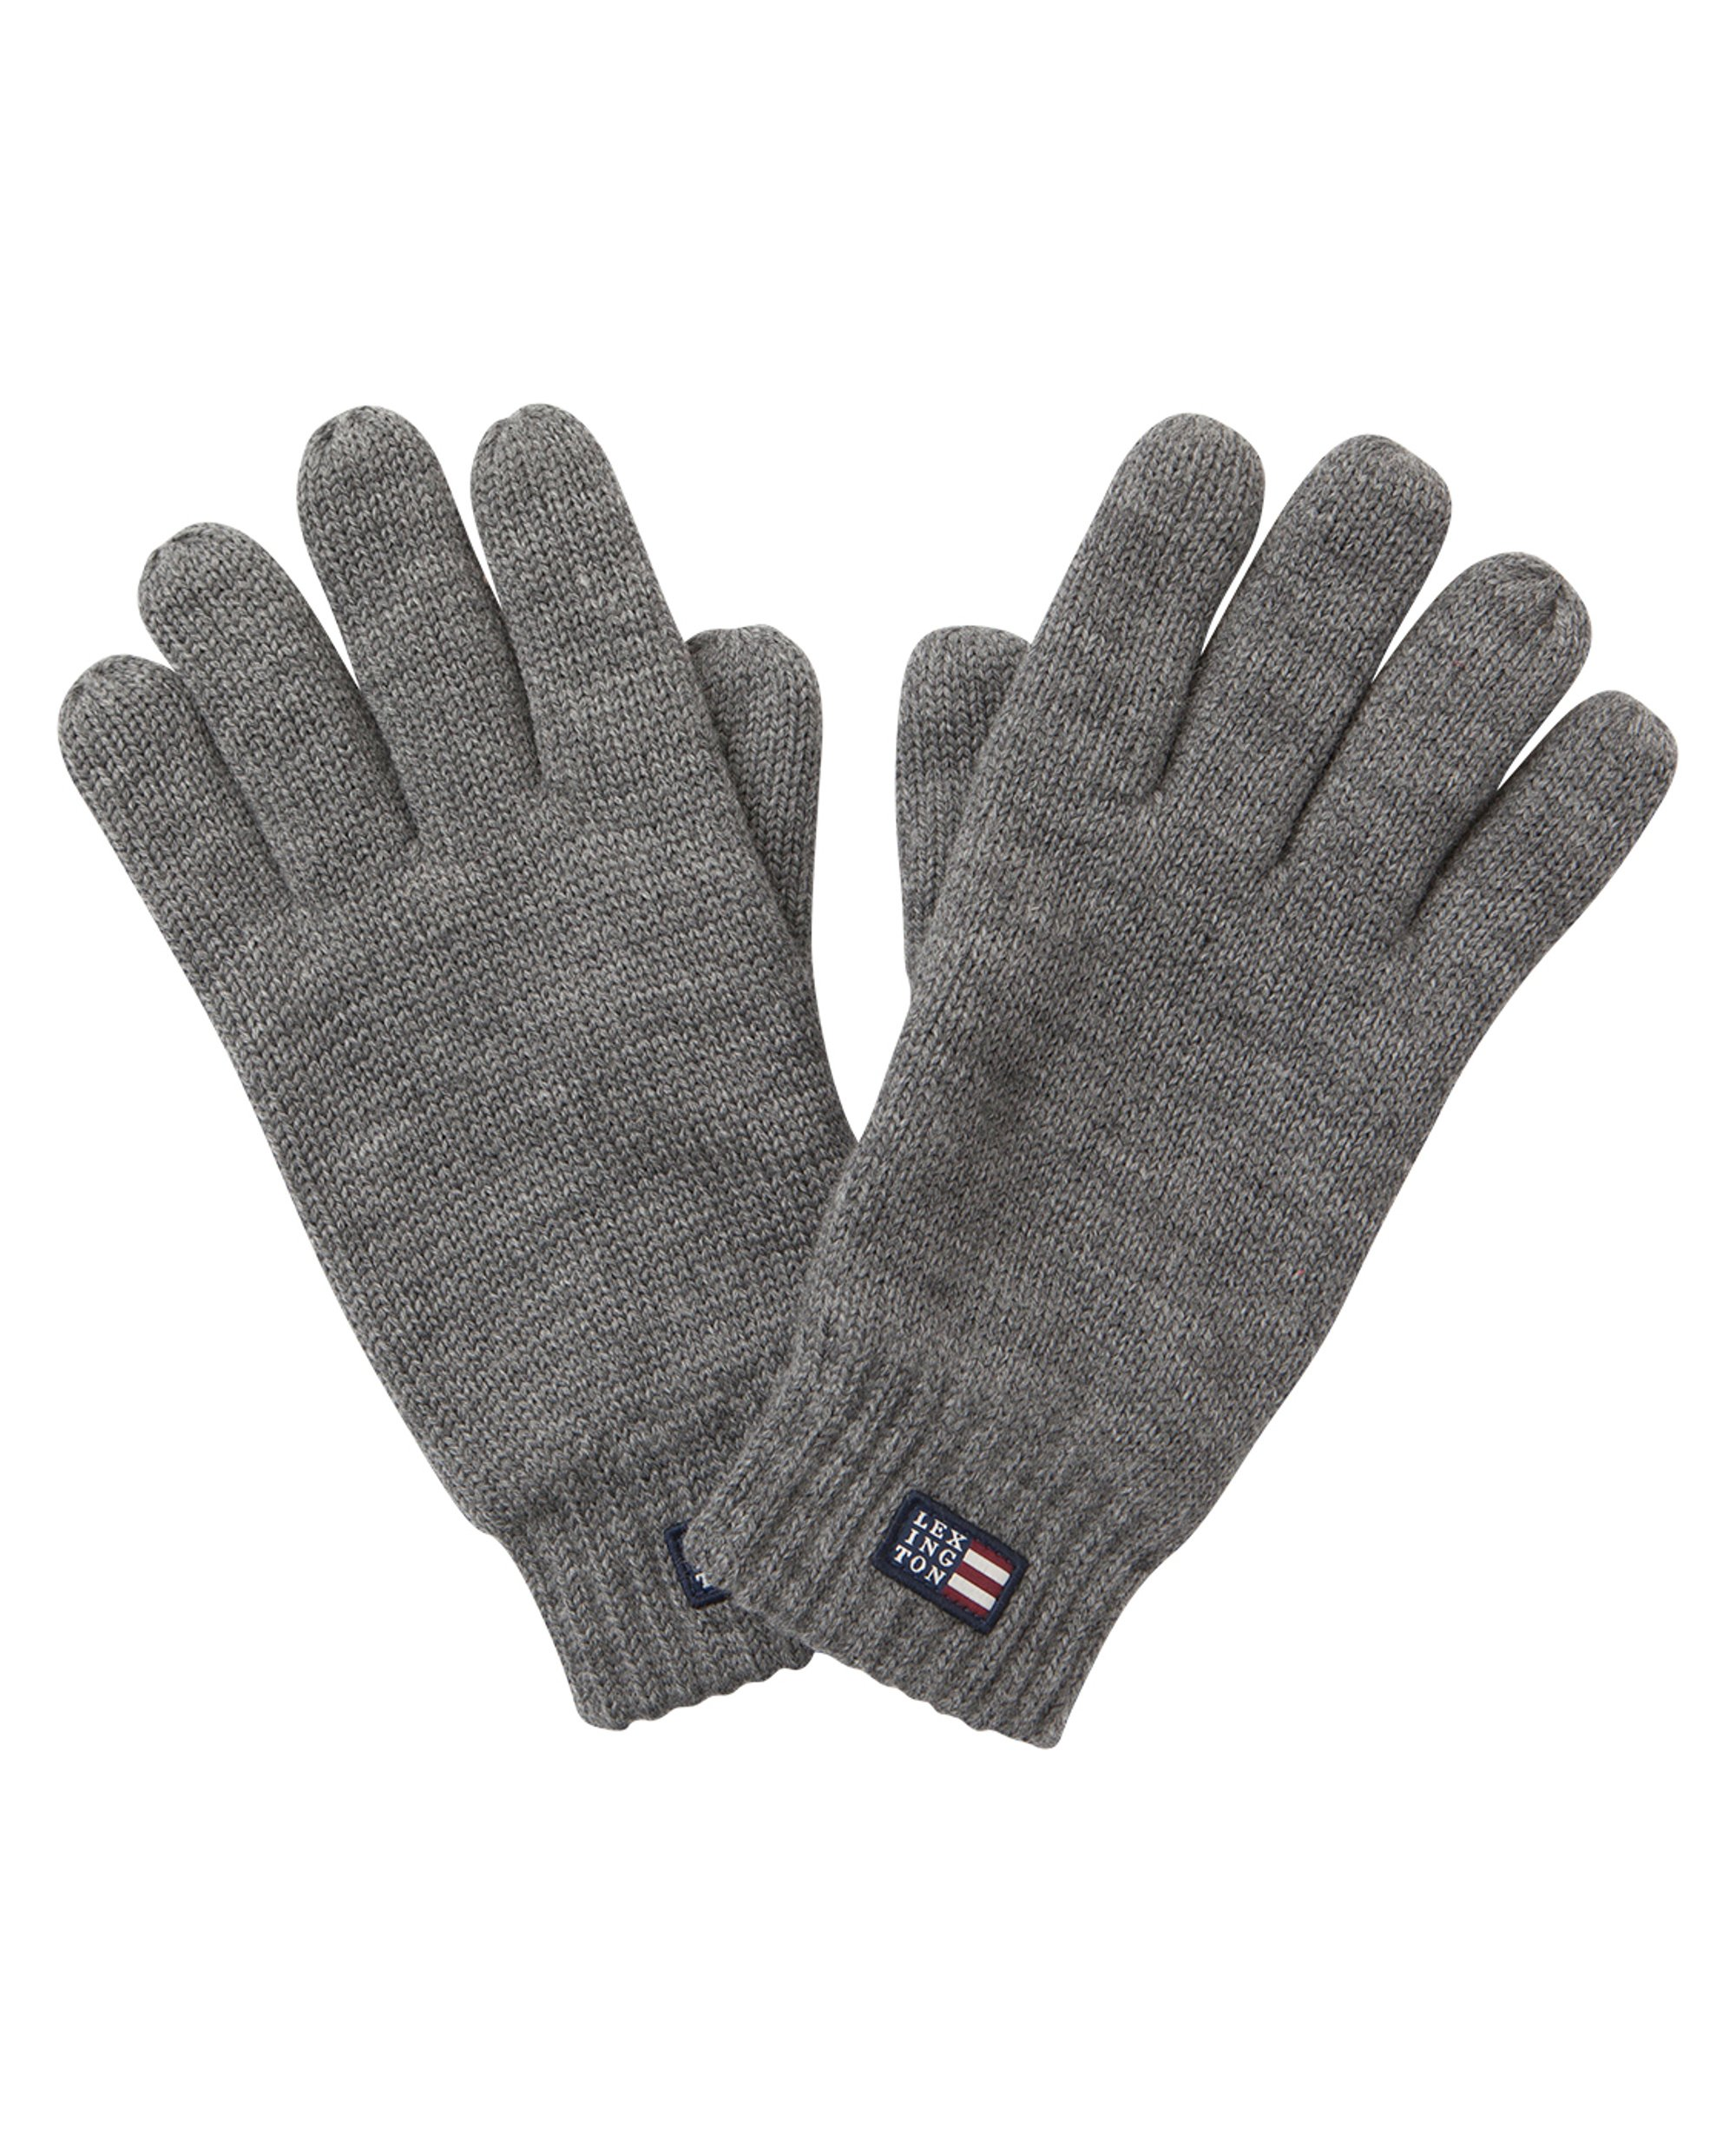 Connecticut Knitted Gloves, Heather Gray